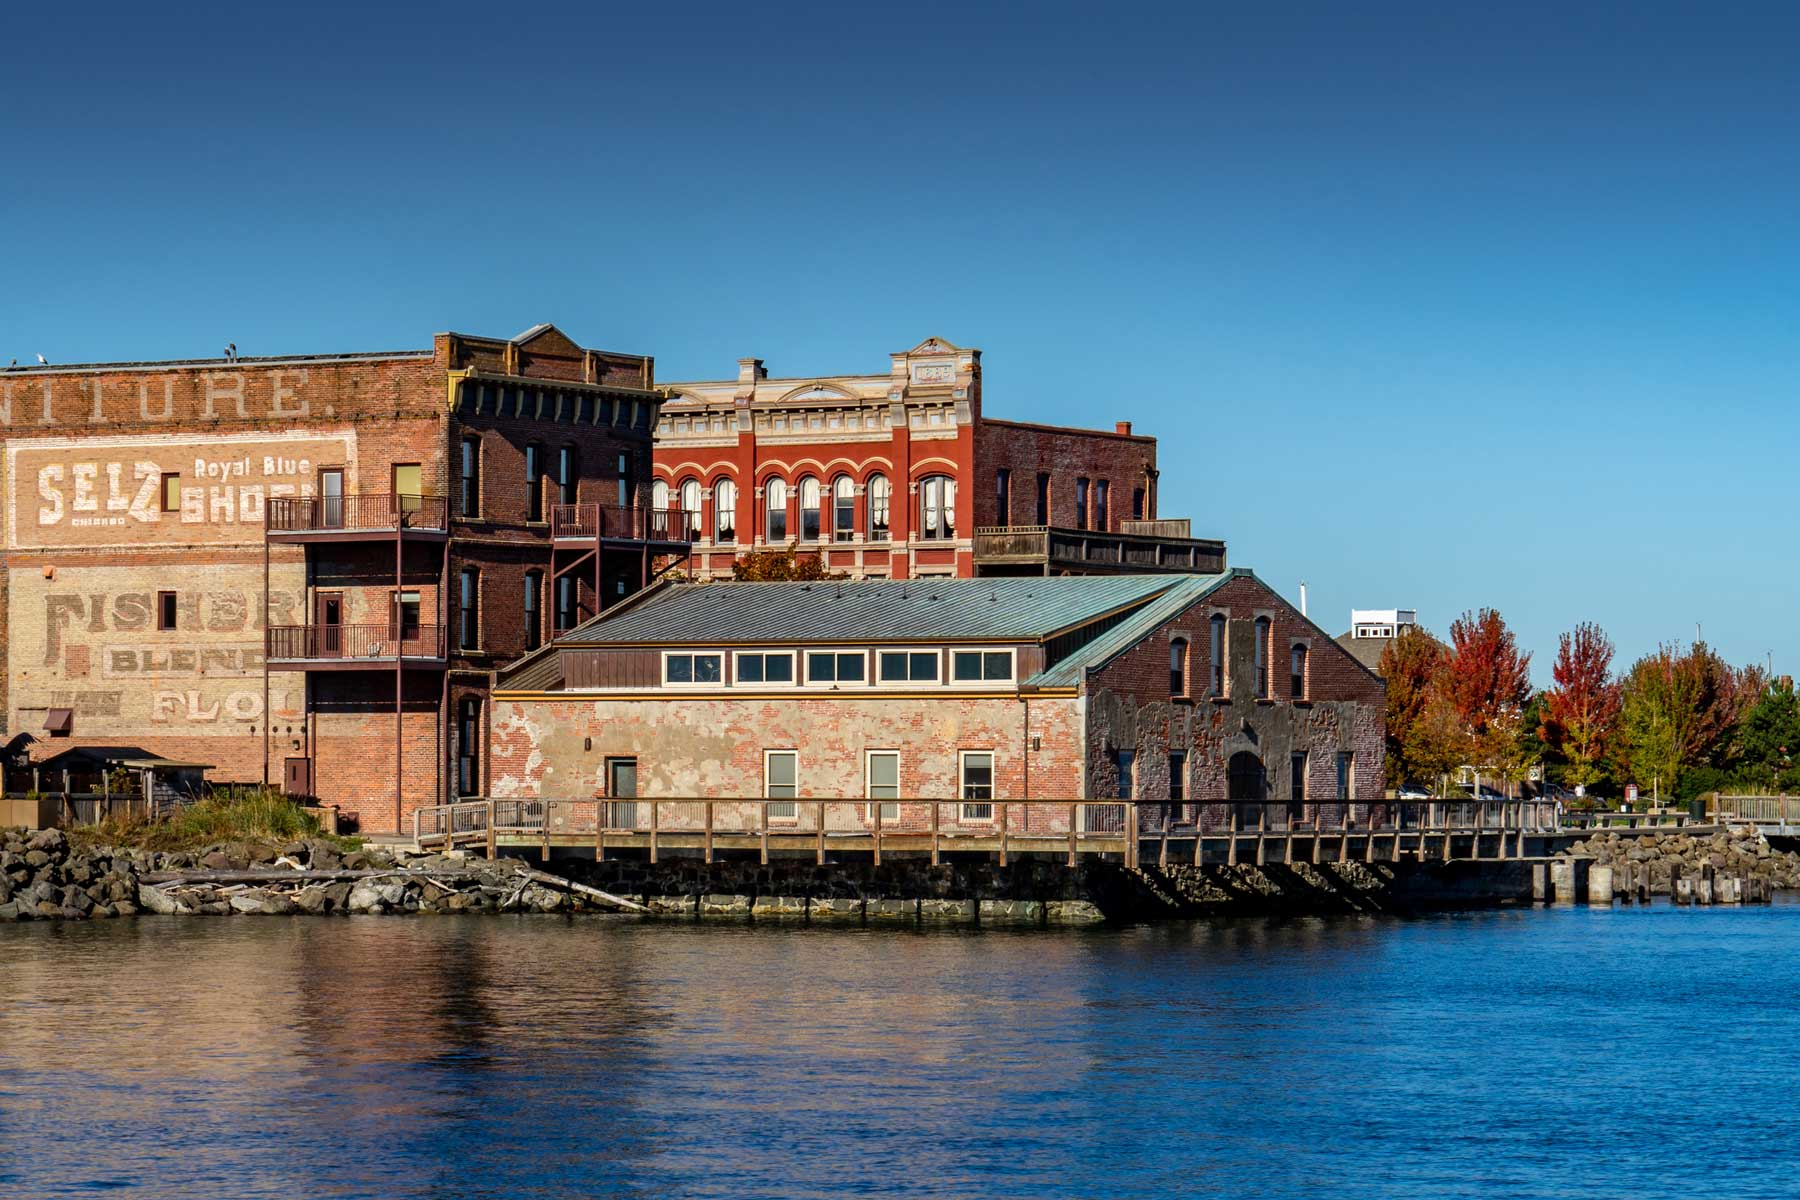 Waterfront Brick Buildings in the afternoon Summer Sun